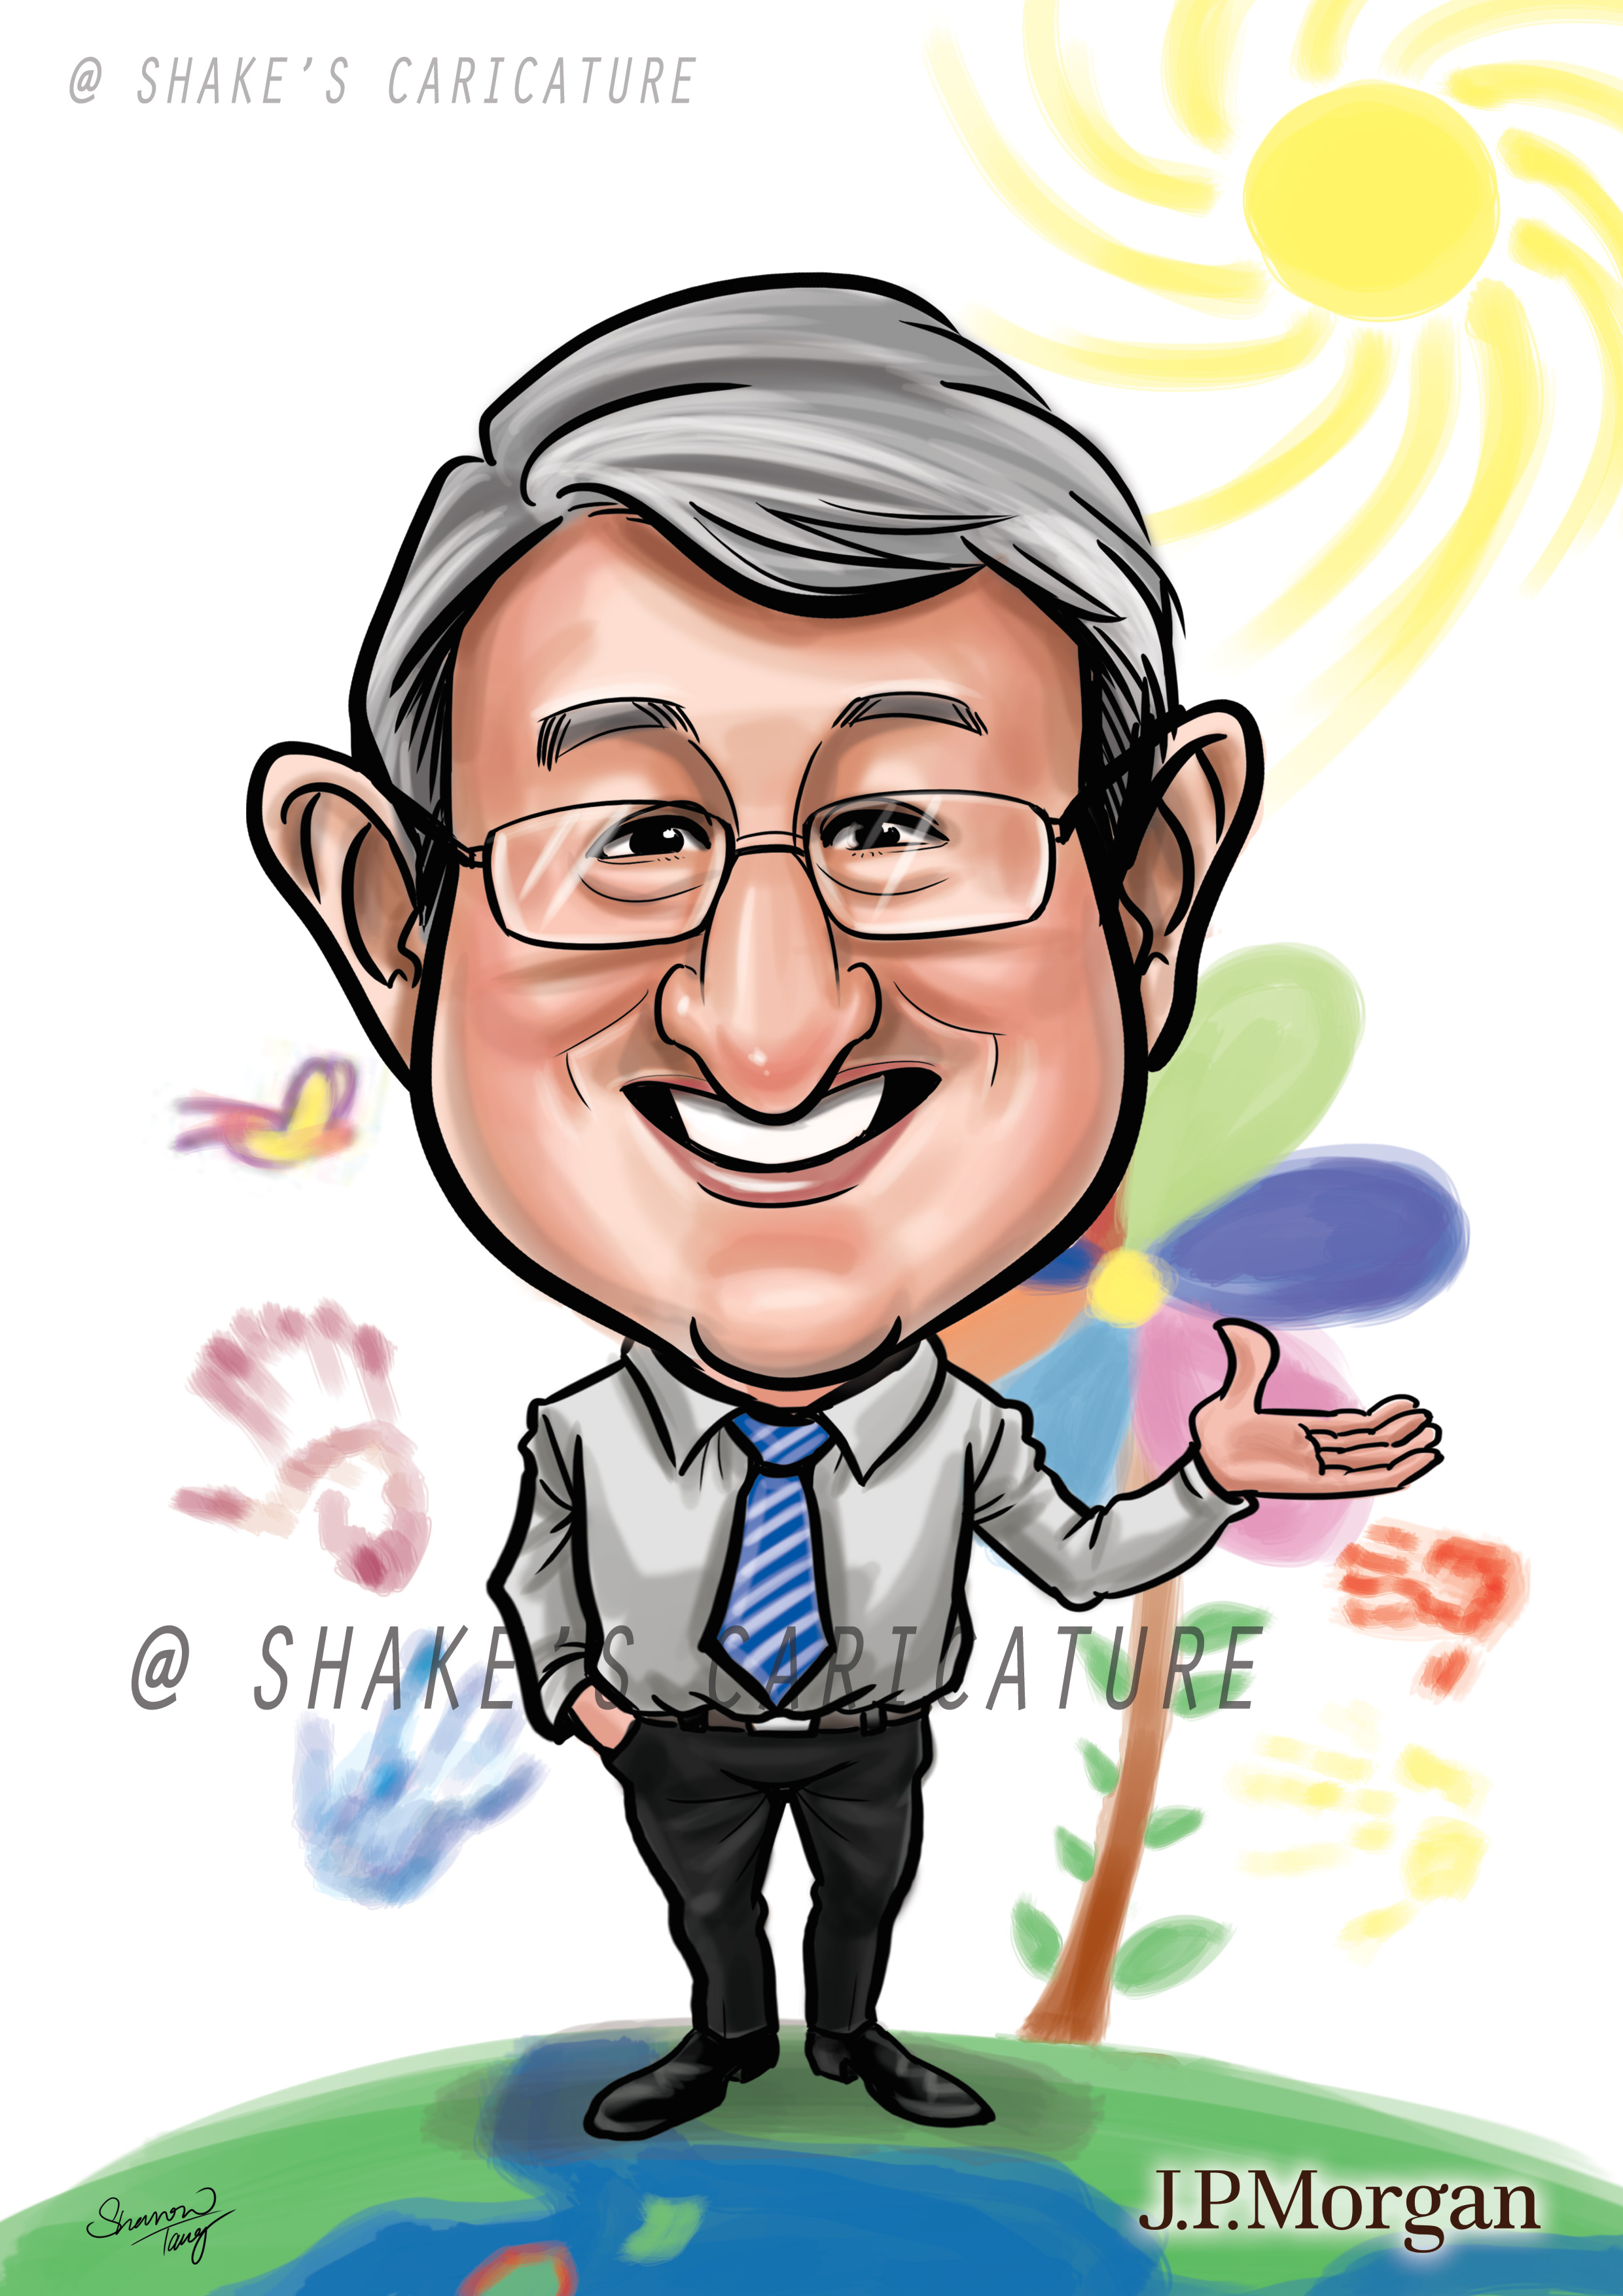 Farewell Caricatures Shake S Caricature